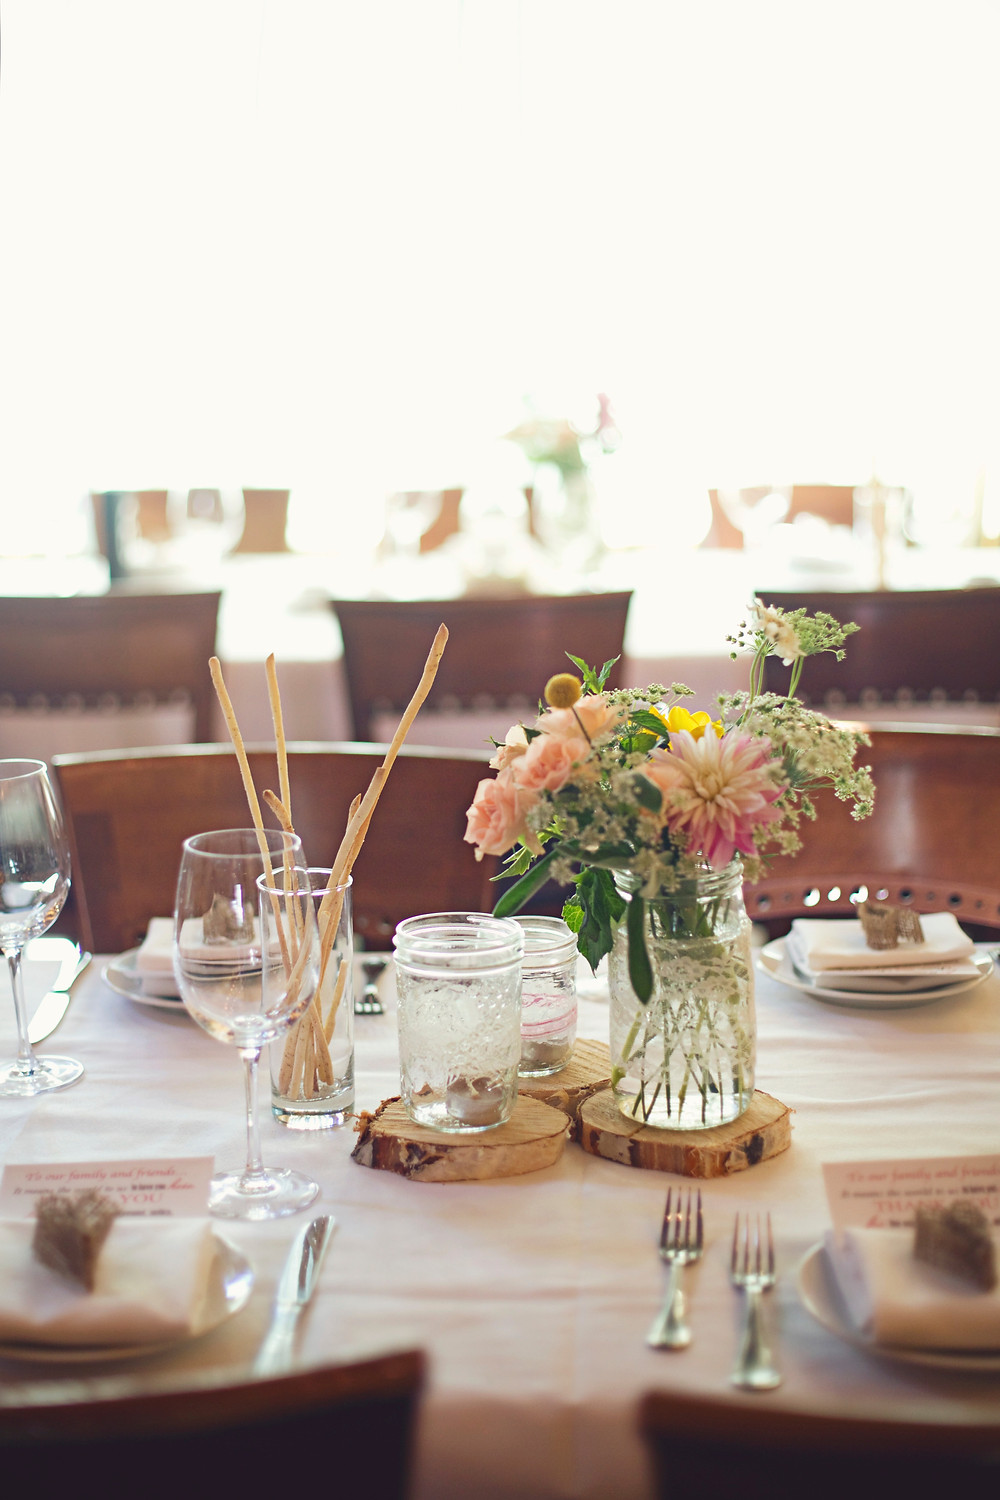 A table elegantly set at a rustic Italian inspired wedding with garden flowers, wooden rounds, and mason jars wrapped with lace.